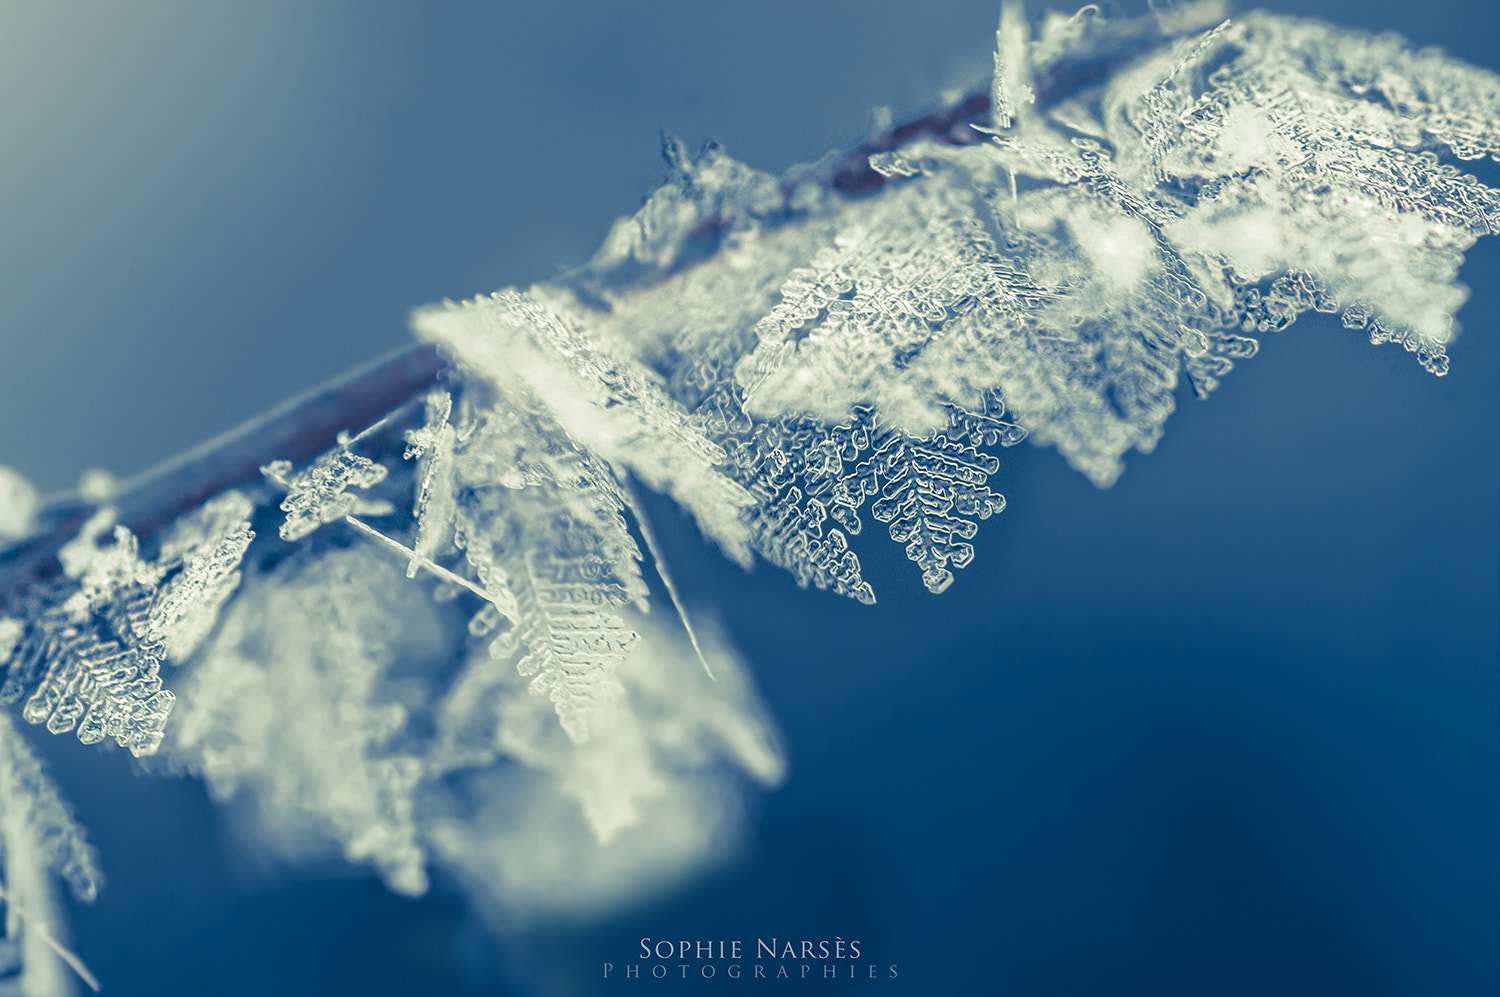 Photograph Frozen Dreams by Sophie Narses on 500px